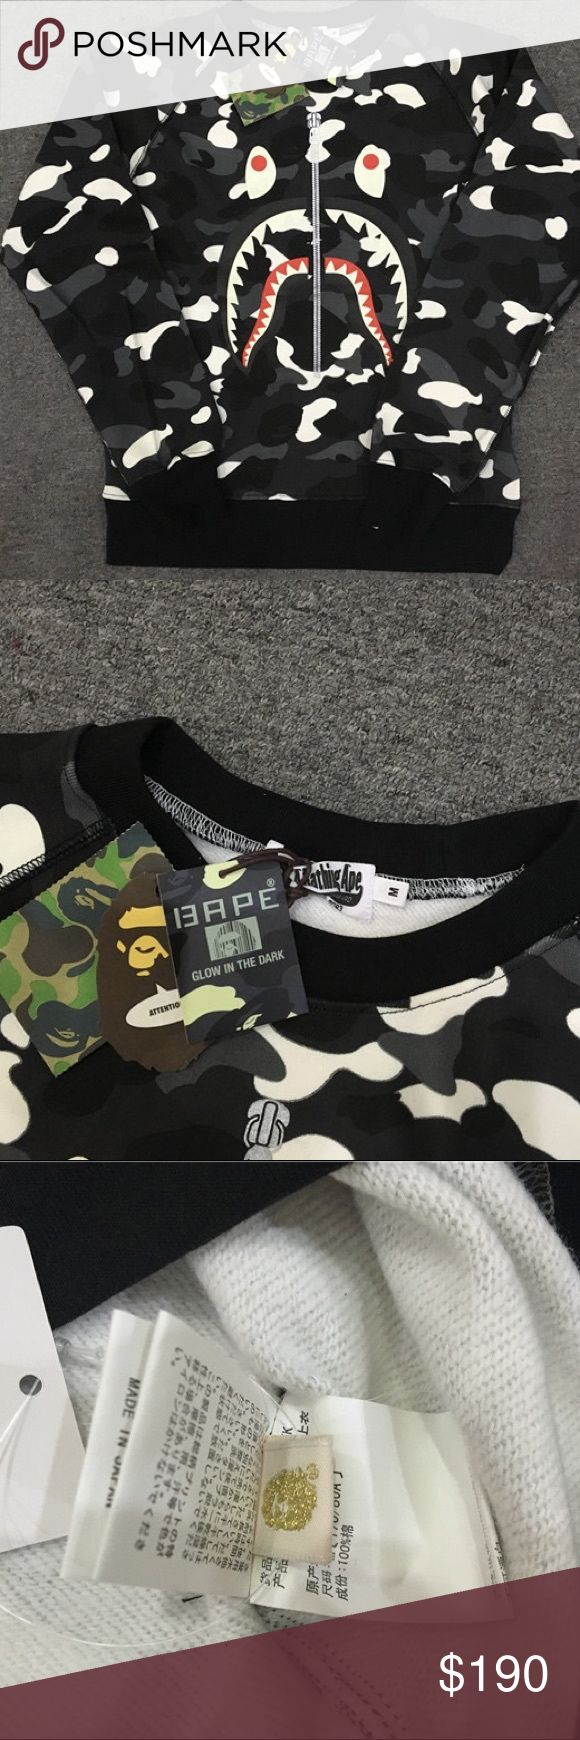 BAPE SWEATER New BAPE SWEATER. Please Note this item is a special Request shipping is 7-10 Business days. BAPE Sweaters